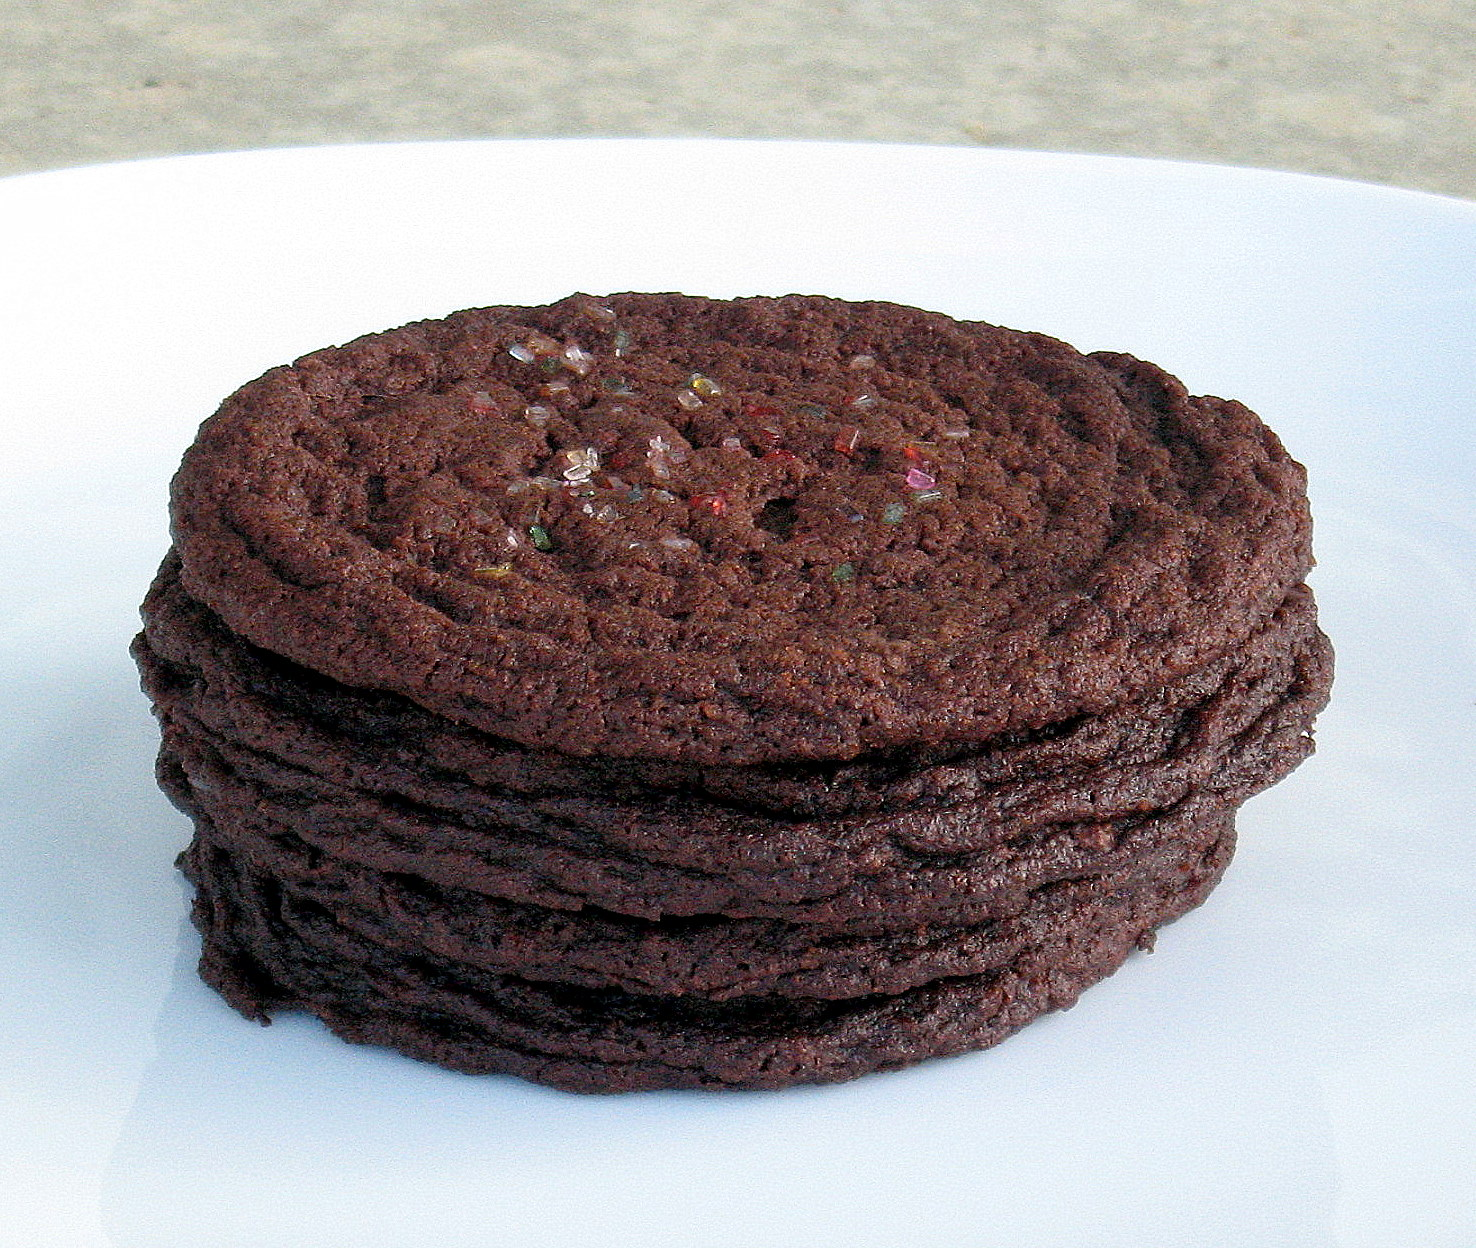 Chocolate Sugar Cookies Made With Valrhona Cocoa - The Spiced Life